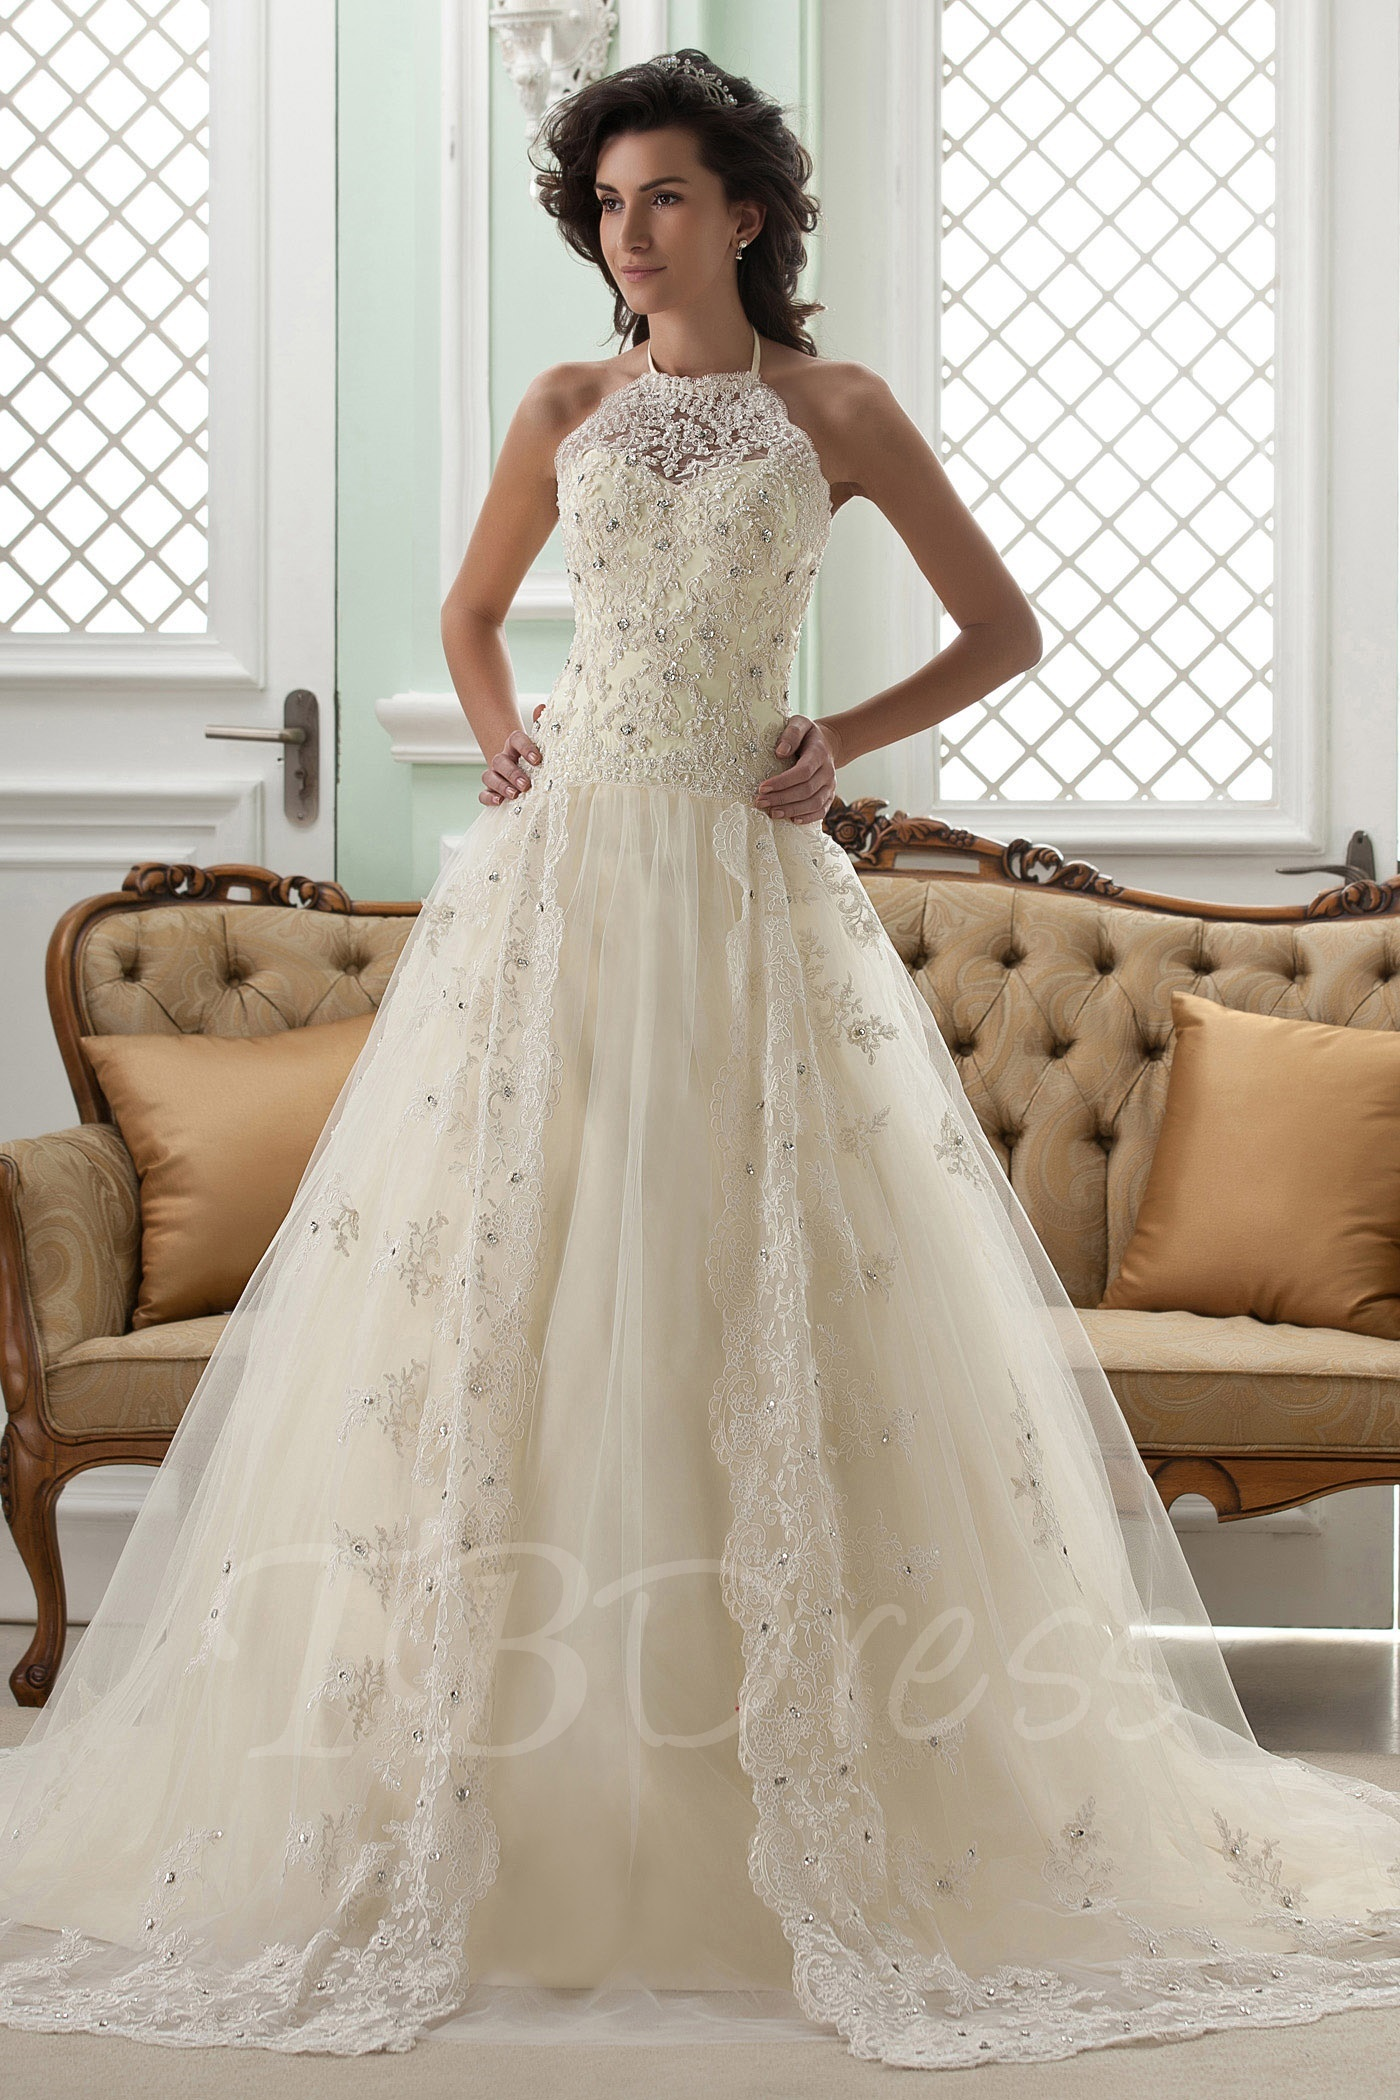 Lace wedding dress - All that you want to know - StyleSkier.com